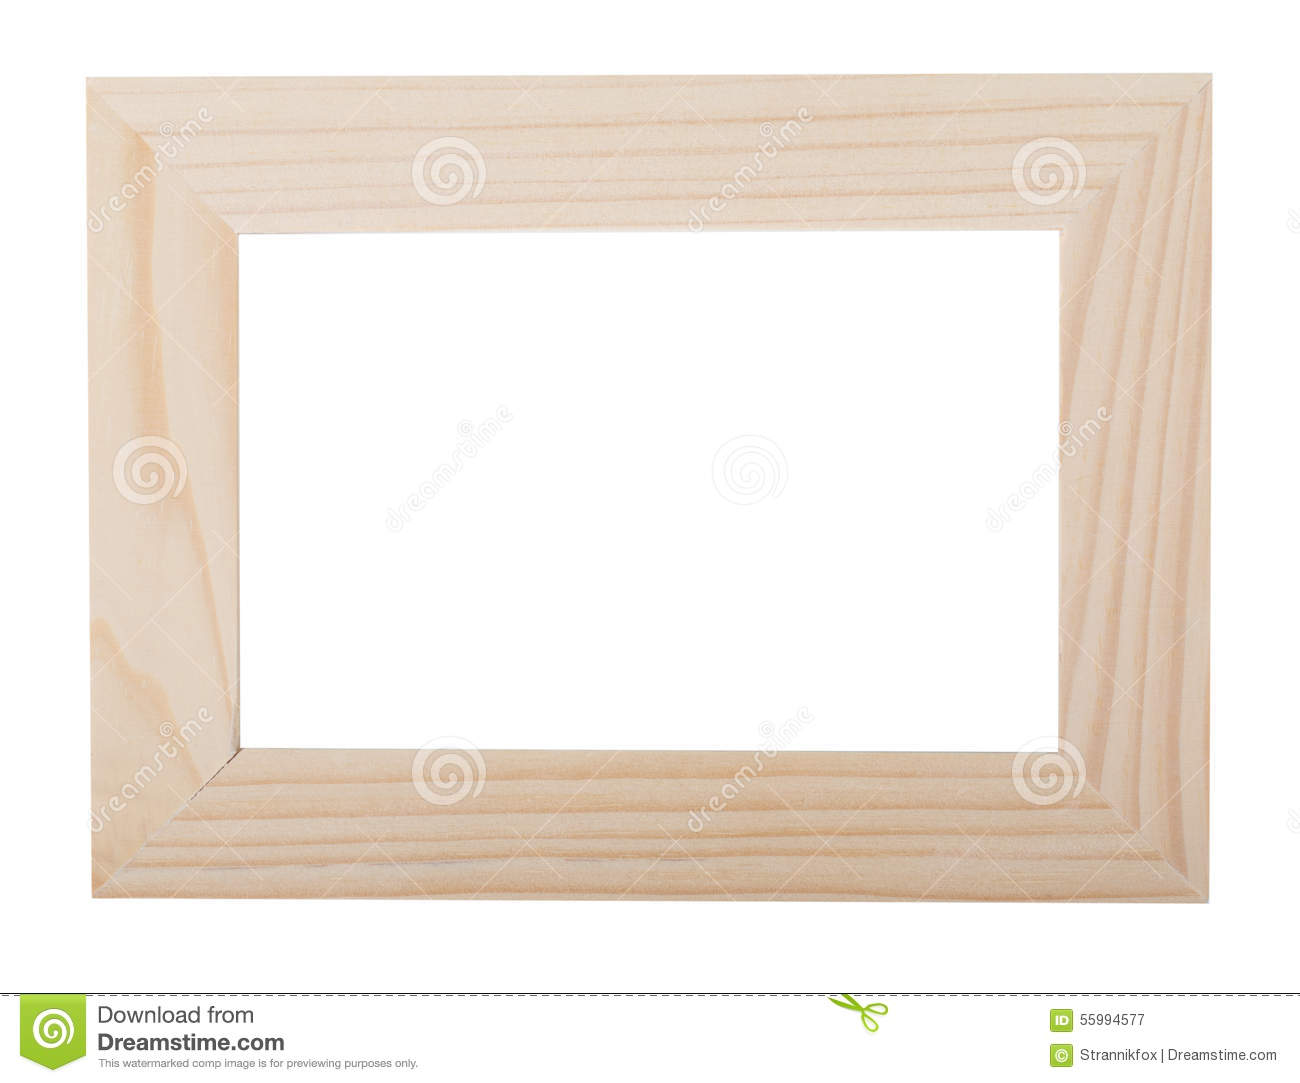 Light Wooden Frame On A White Background Stock Image - Image of ...